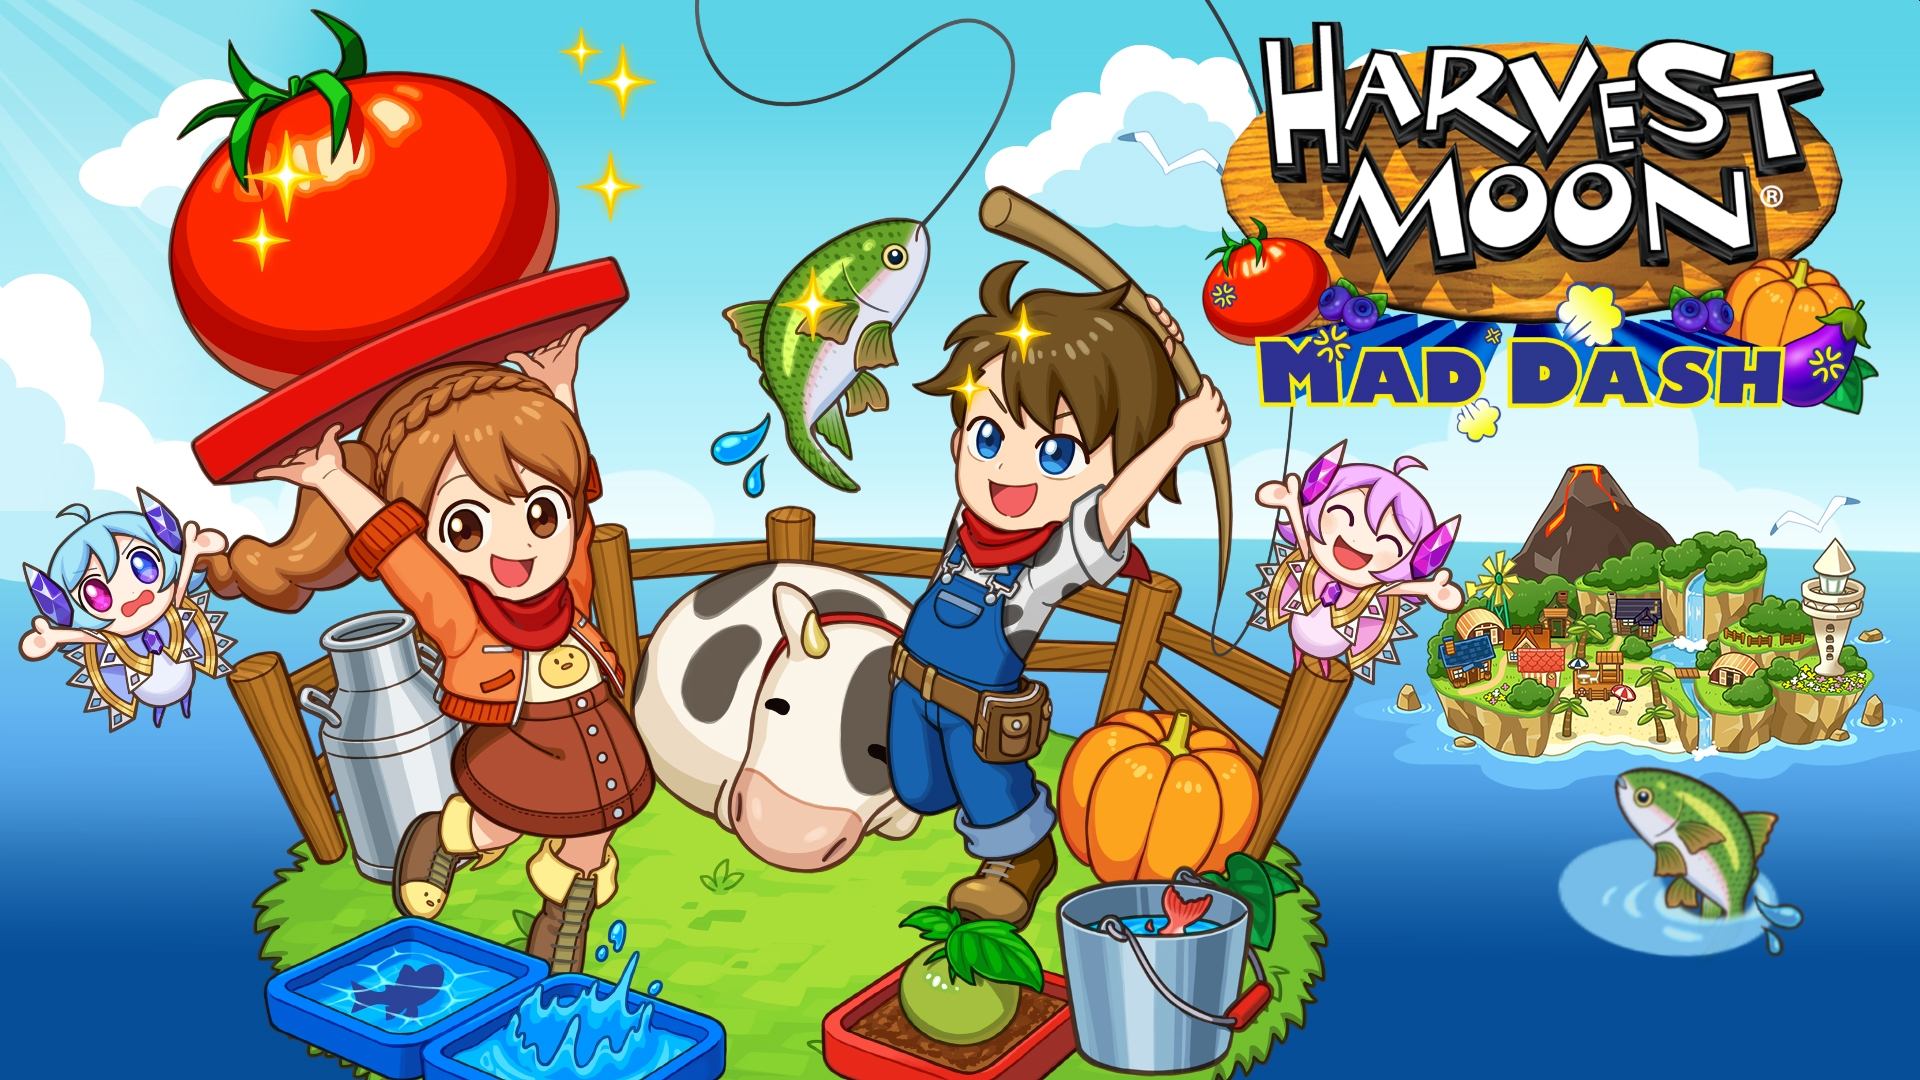 Natsume Launches Harvest Moon: Mad Dash On Xbox One And Windows 10 Store